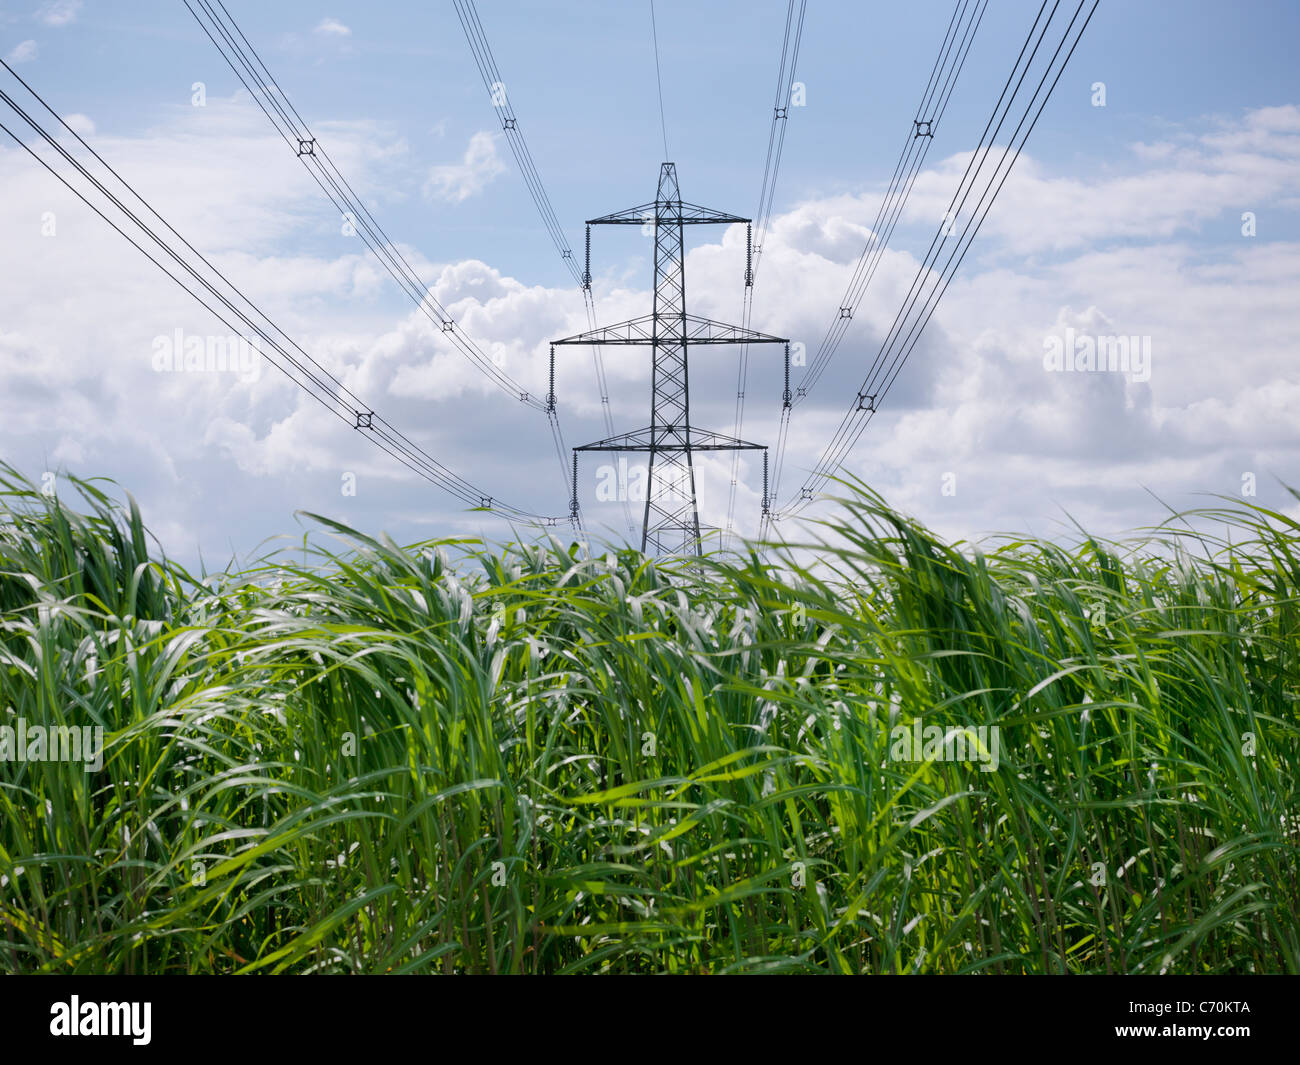 Biomass fuel crop growing by power lines - Stock Image